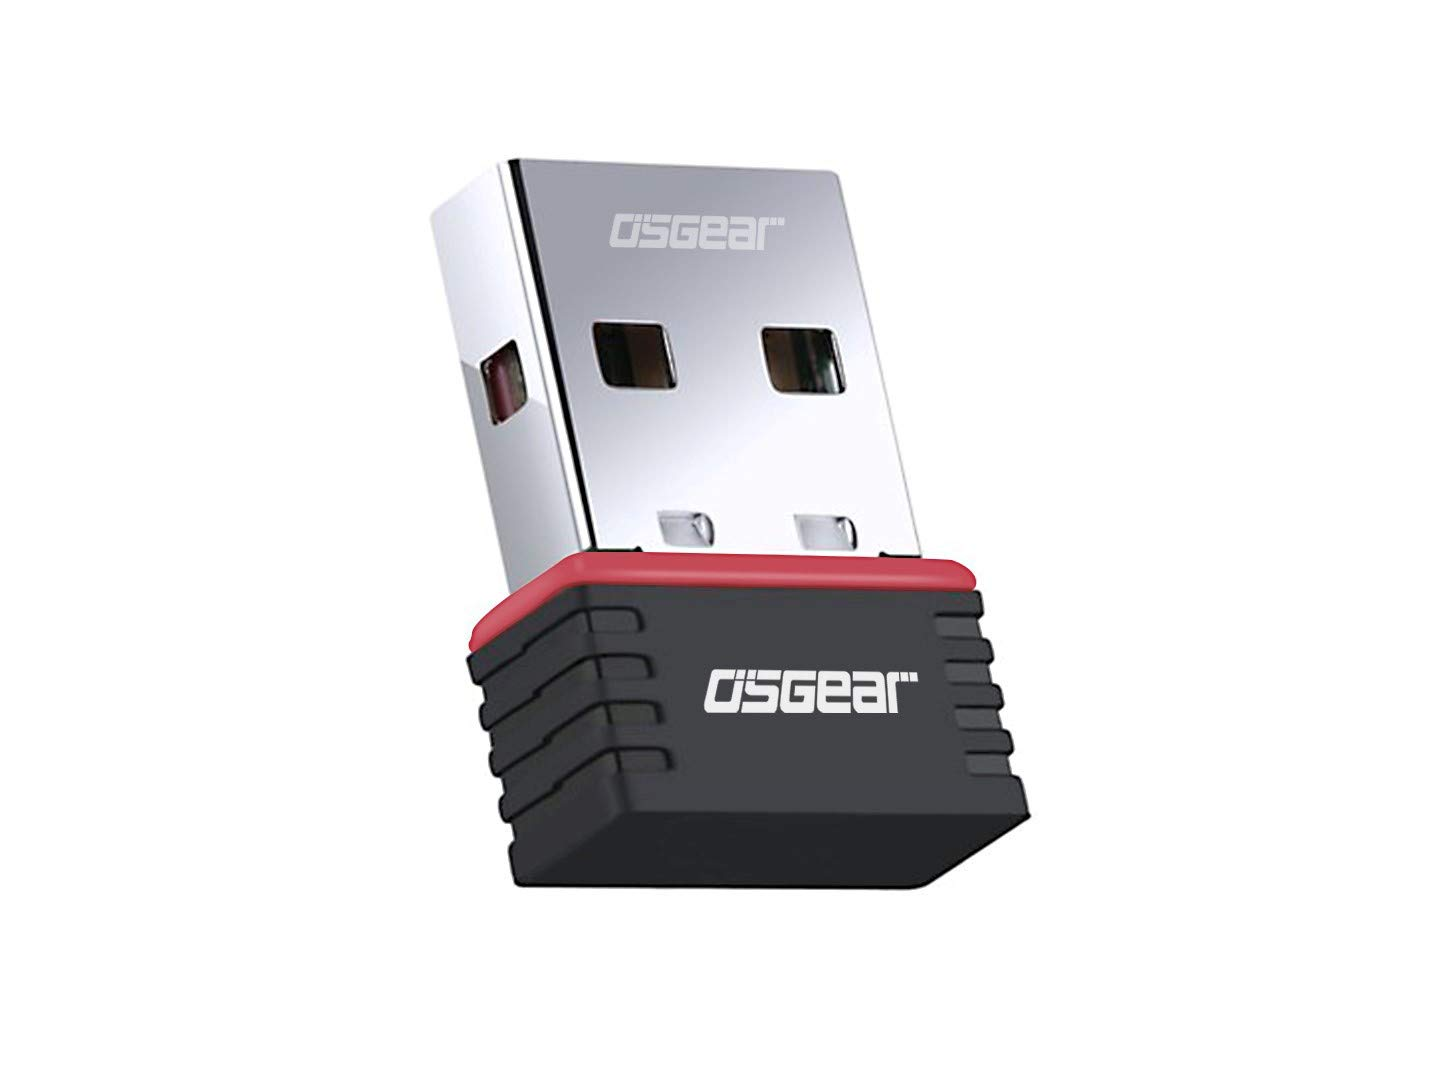 OSGEAR WiFi Adapter 150Mbps USB Wi-Fi Wireless Adapter USB 2.0 Network Card Portable High Speed WiFi Receiver for Laptop PC Computer Win10/Win8/Win17 XP Vista Mac Linux